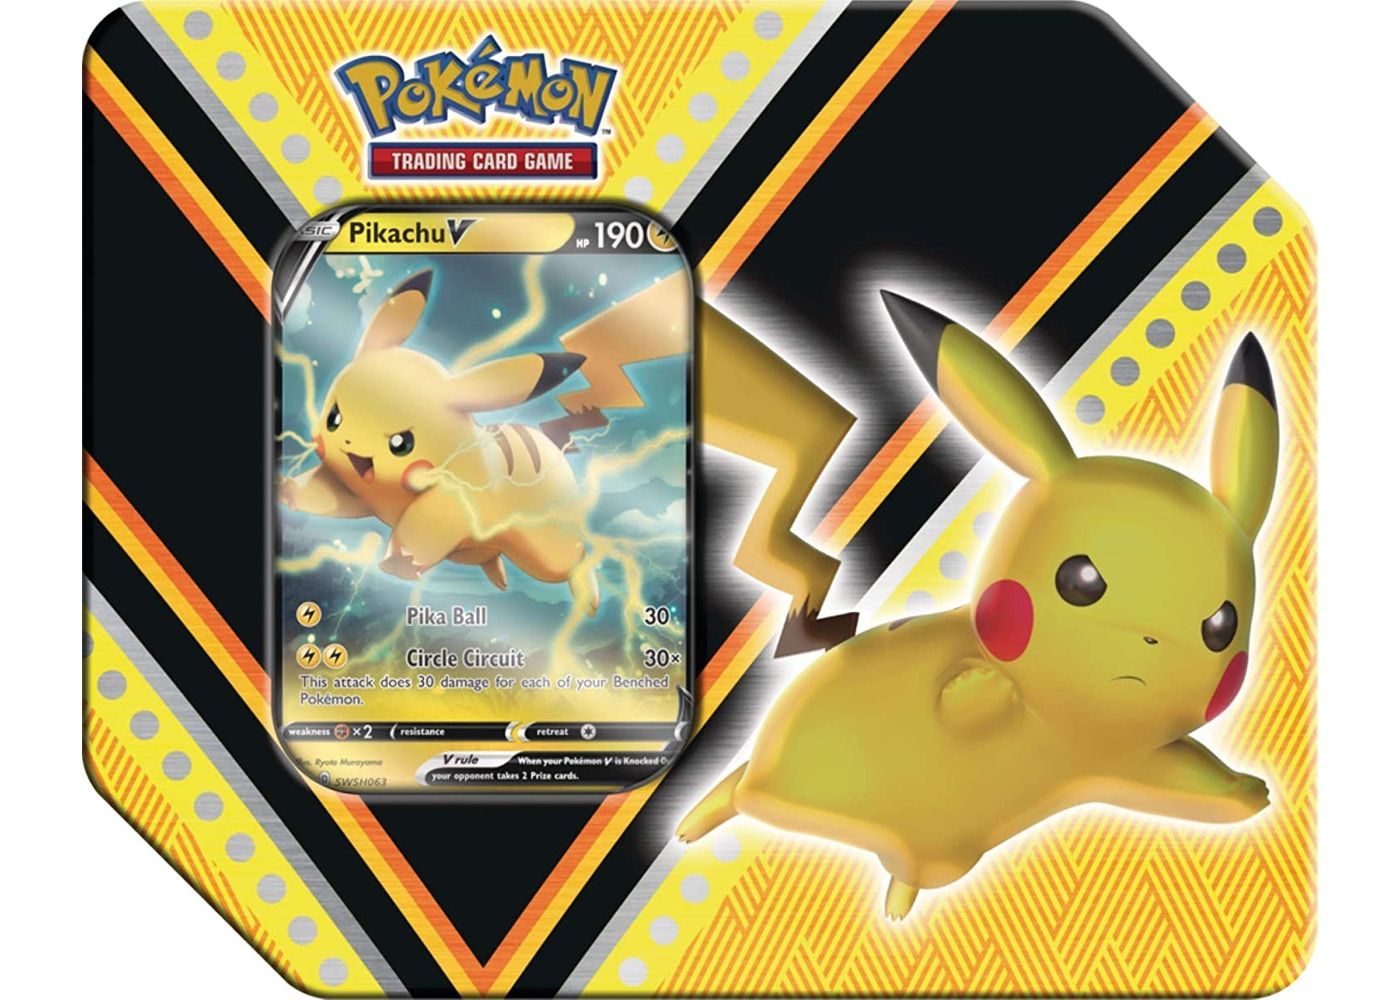 2020 Pokemon TCG V Powers Pikachu V Tin - 2020